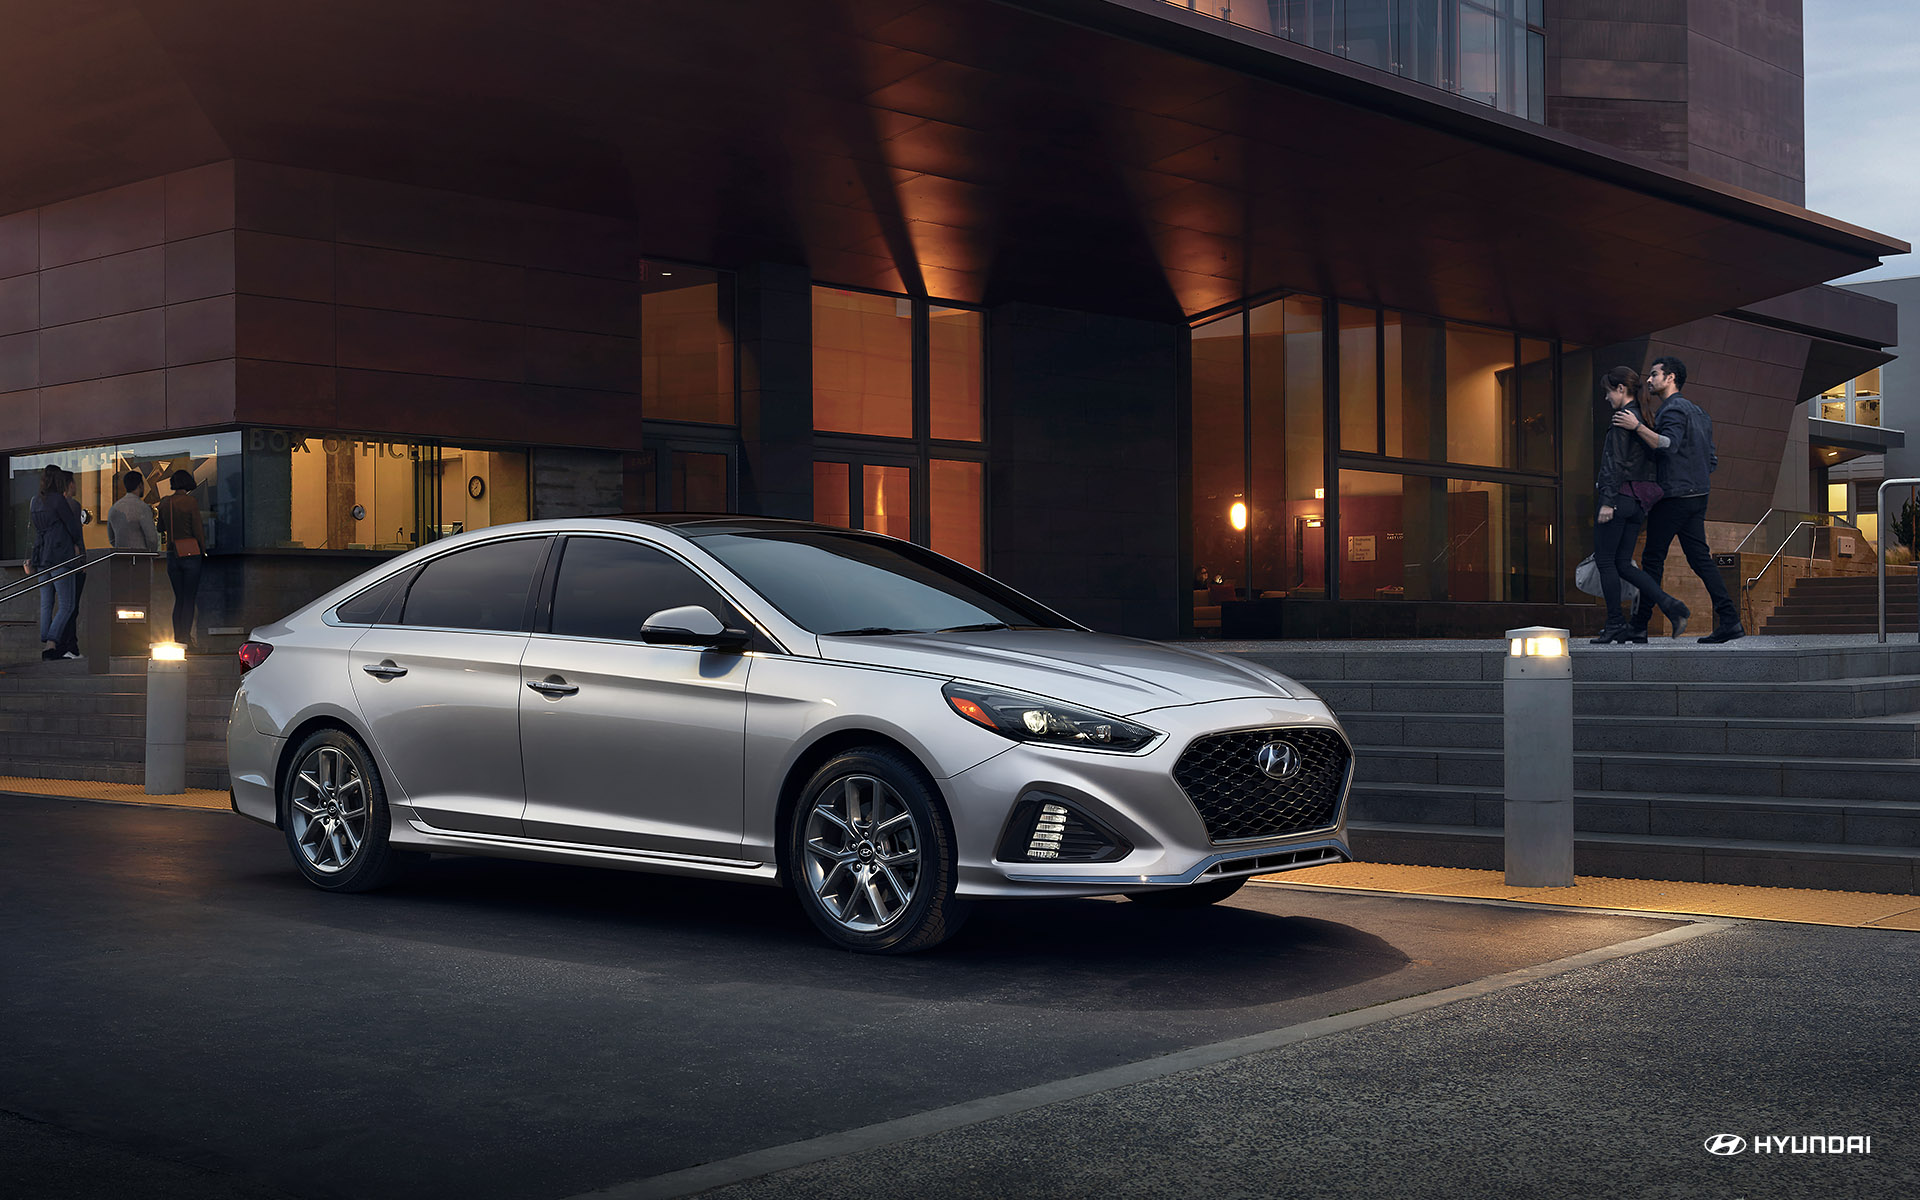 2019 Hyundai Sonata Leasing near Richmond, VA